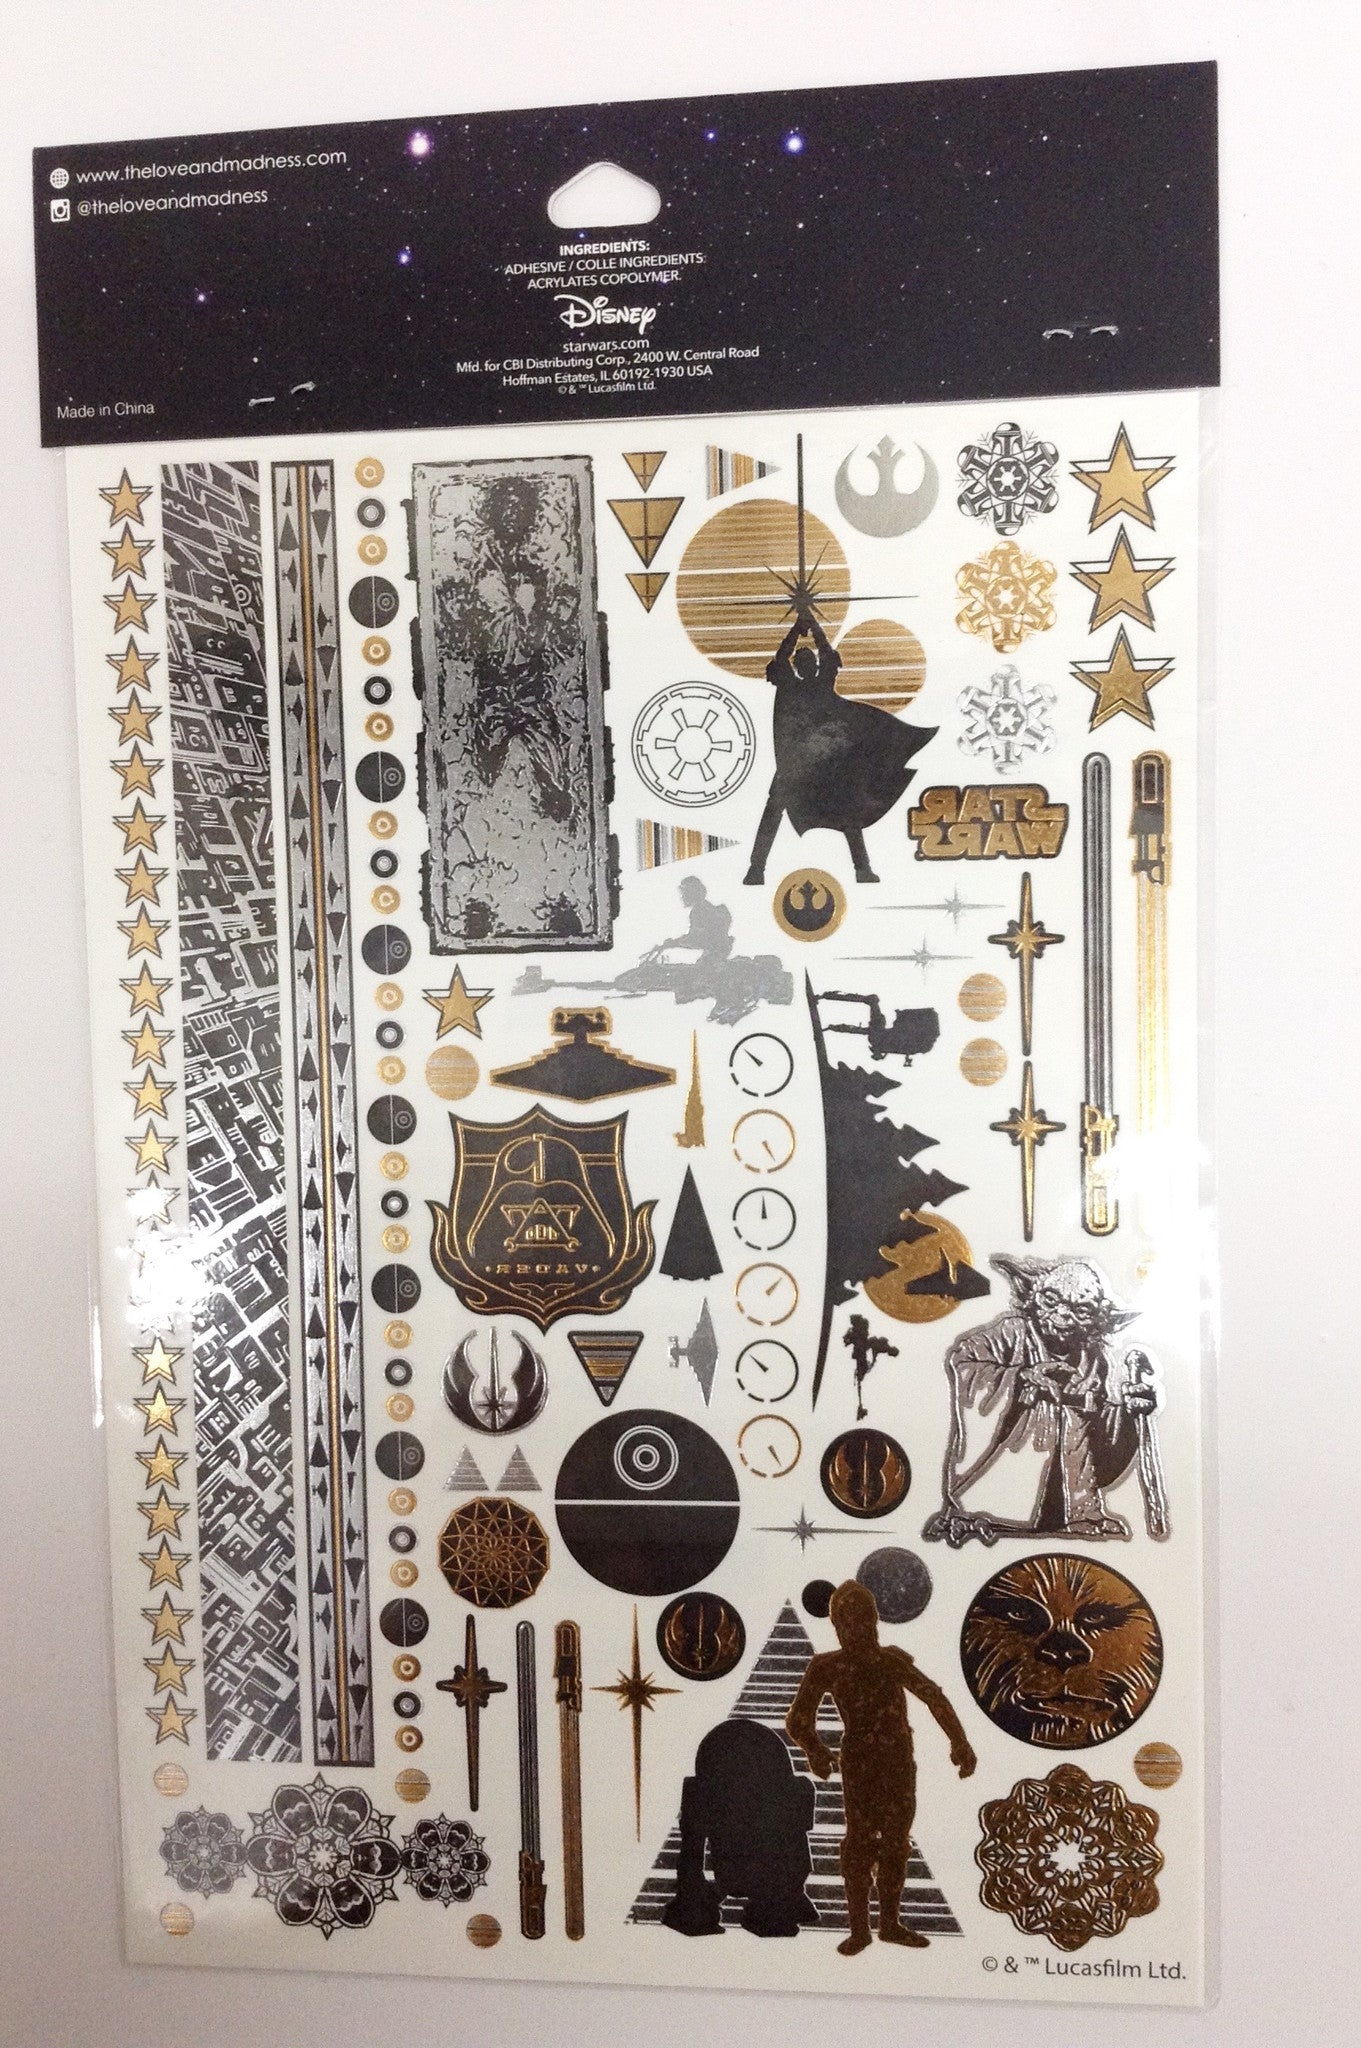 Star Wars Gold & Black Temporary Tattoos - Shop Lost Generation  - 2